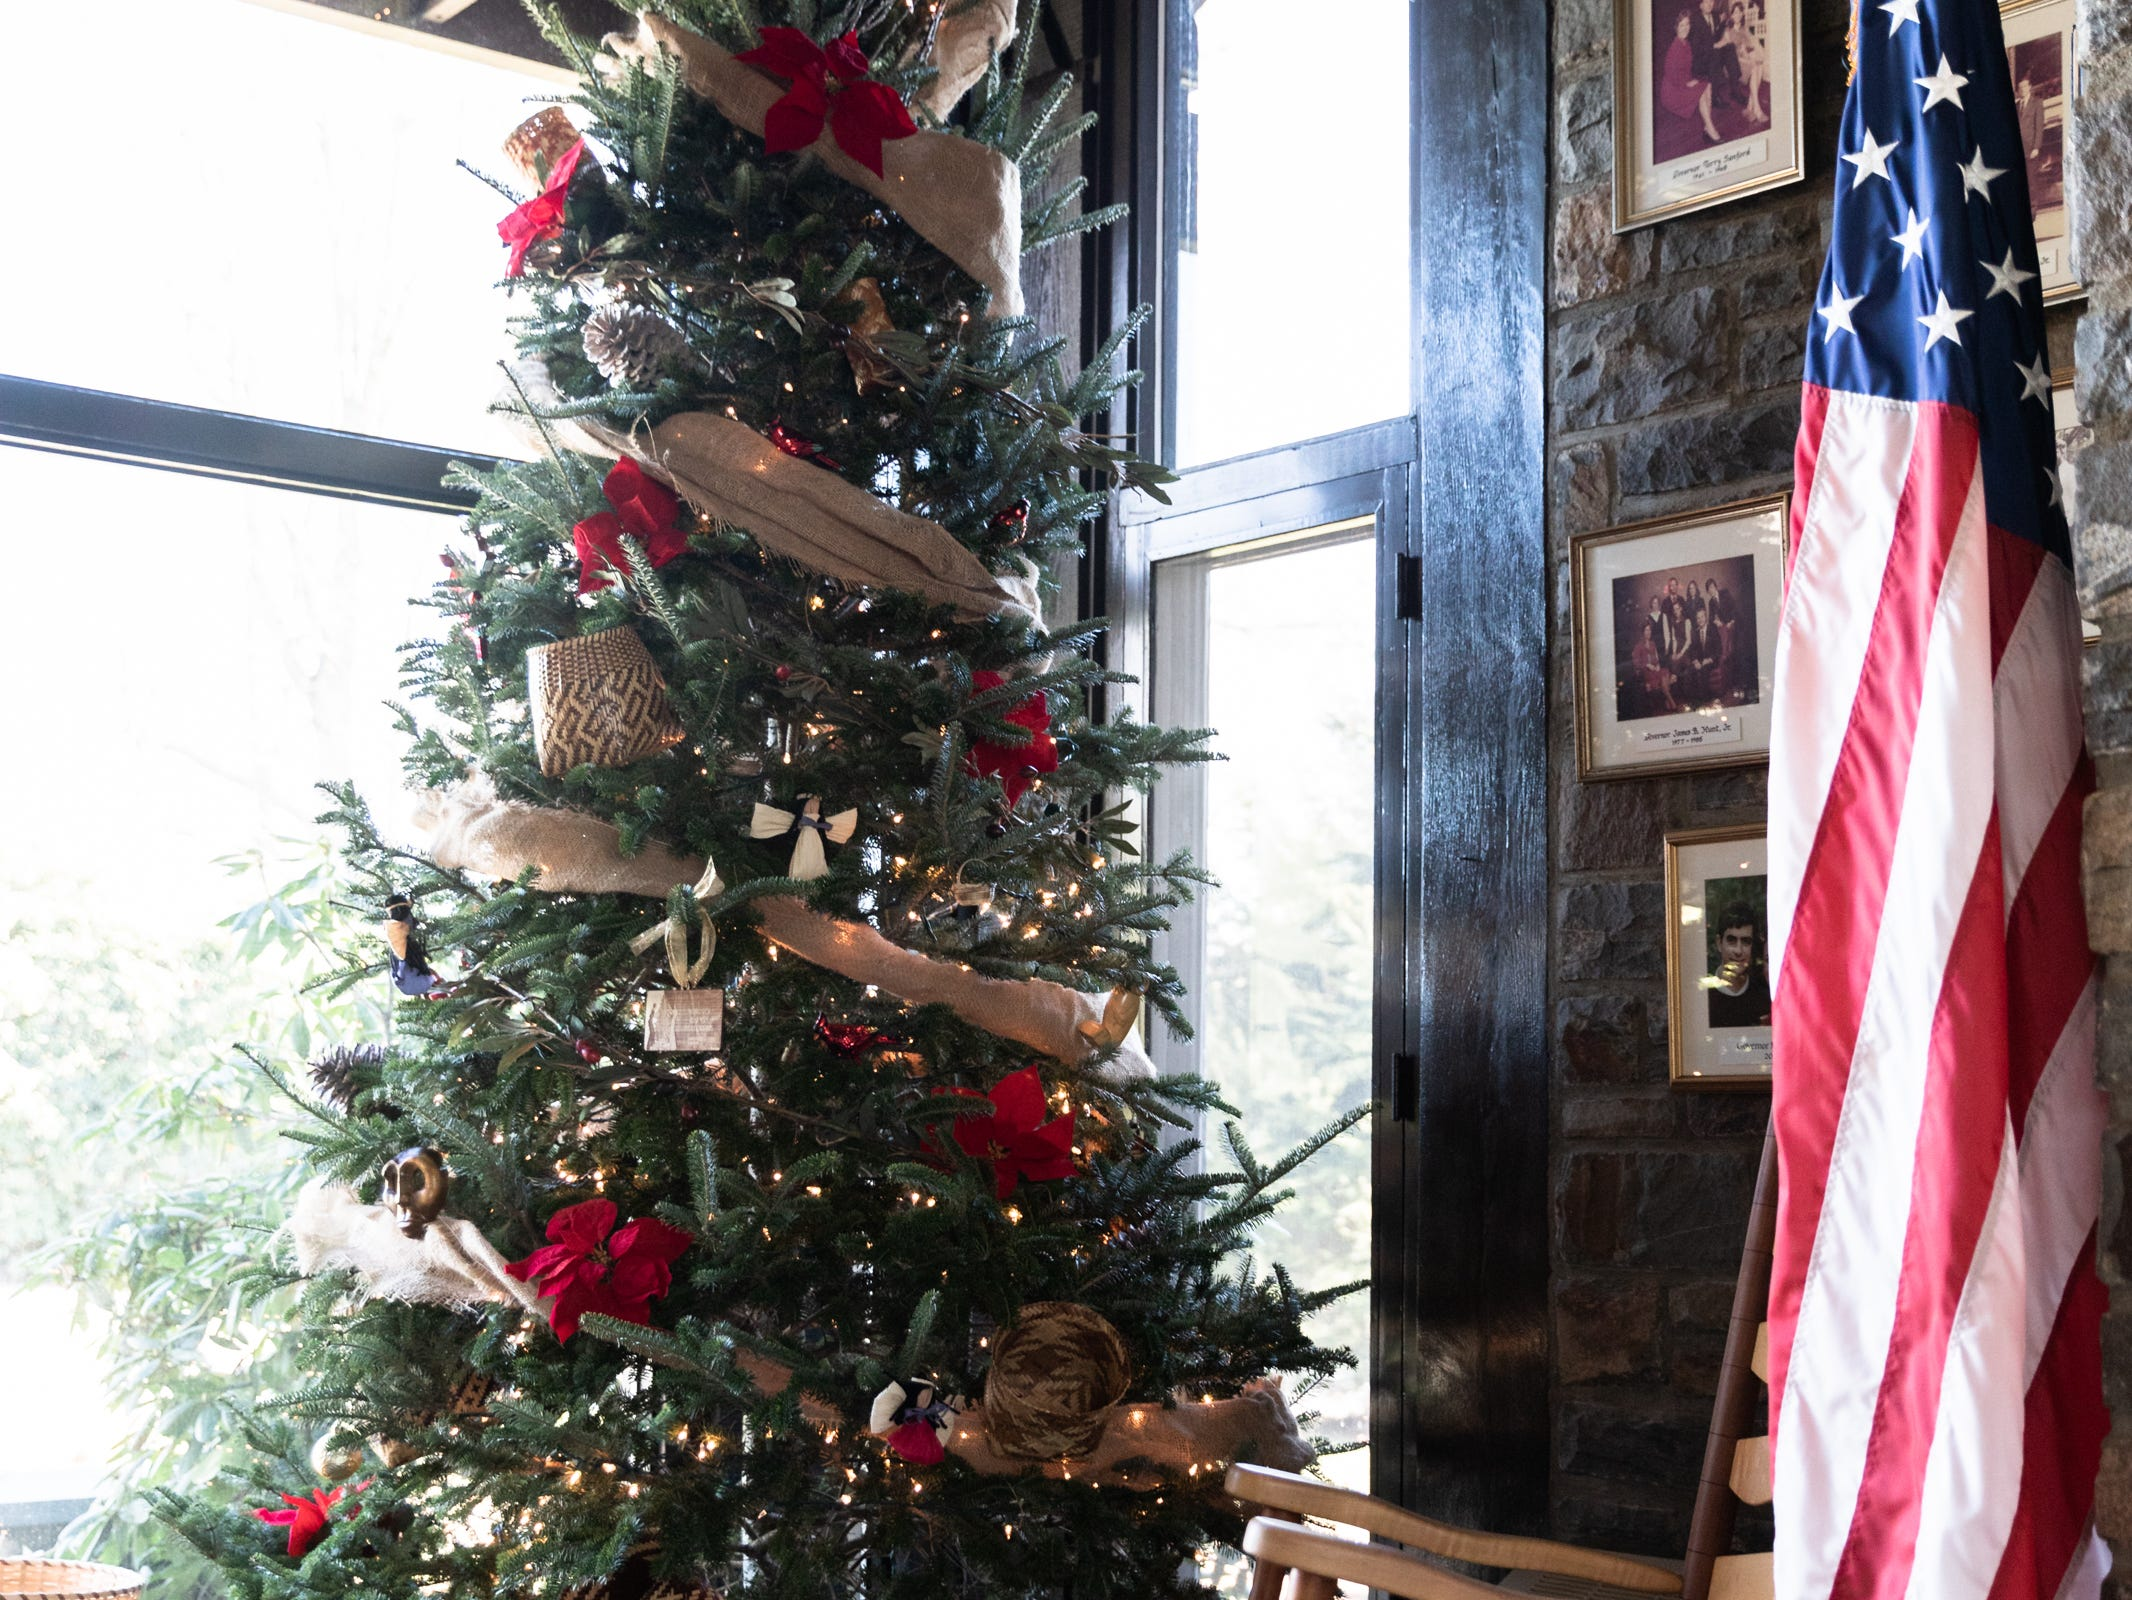 A Christmas tree in the foyer of the Governor's Western Residence on Patton Mountain Road in Asheville.